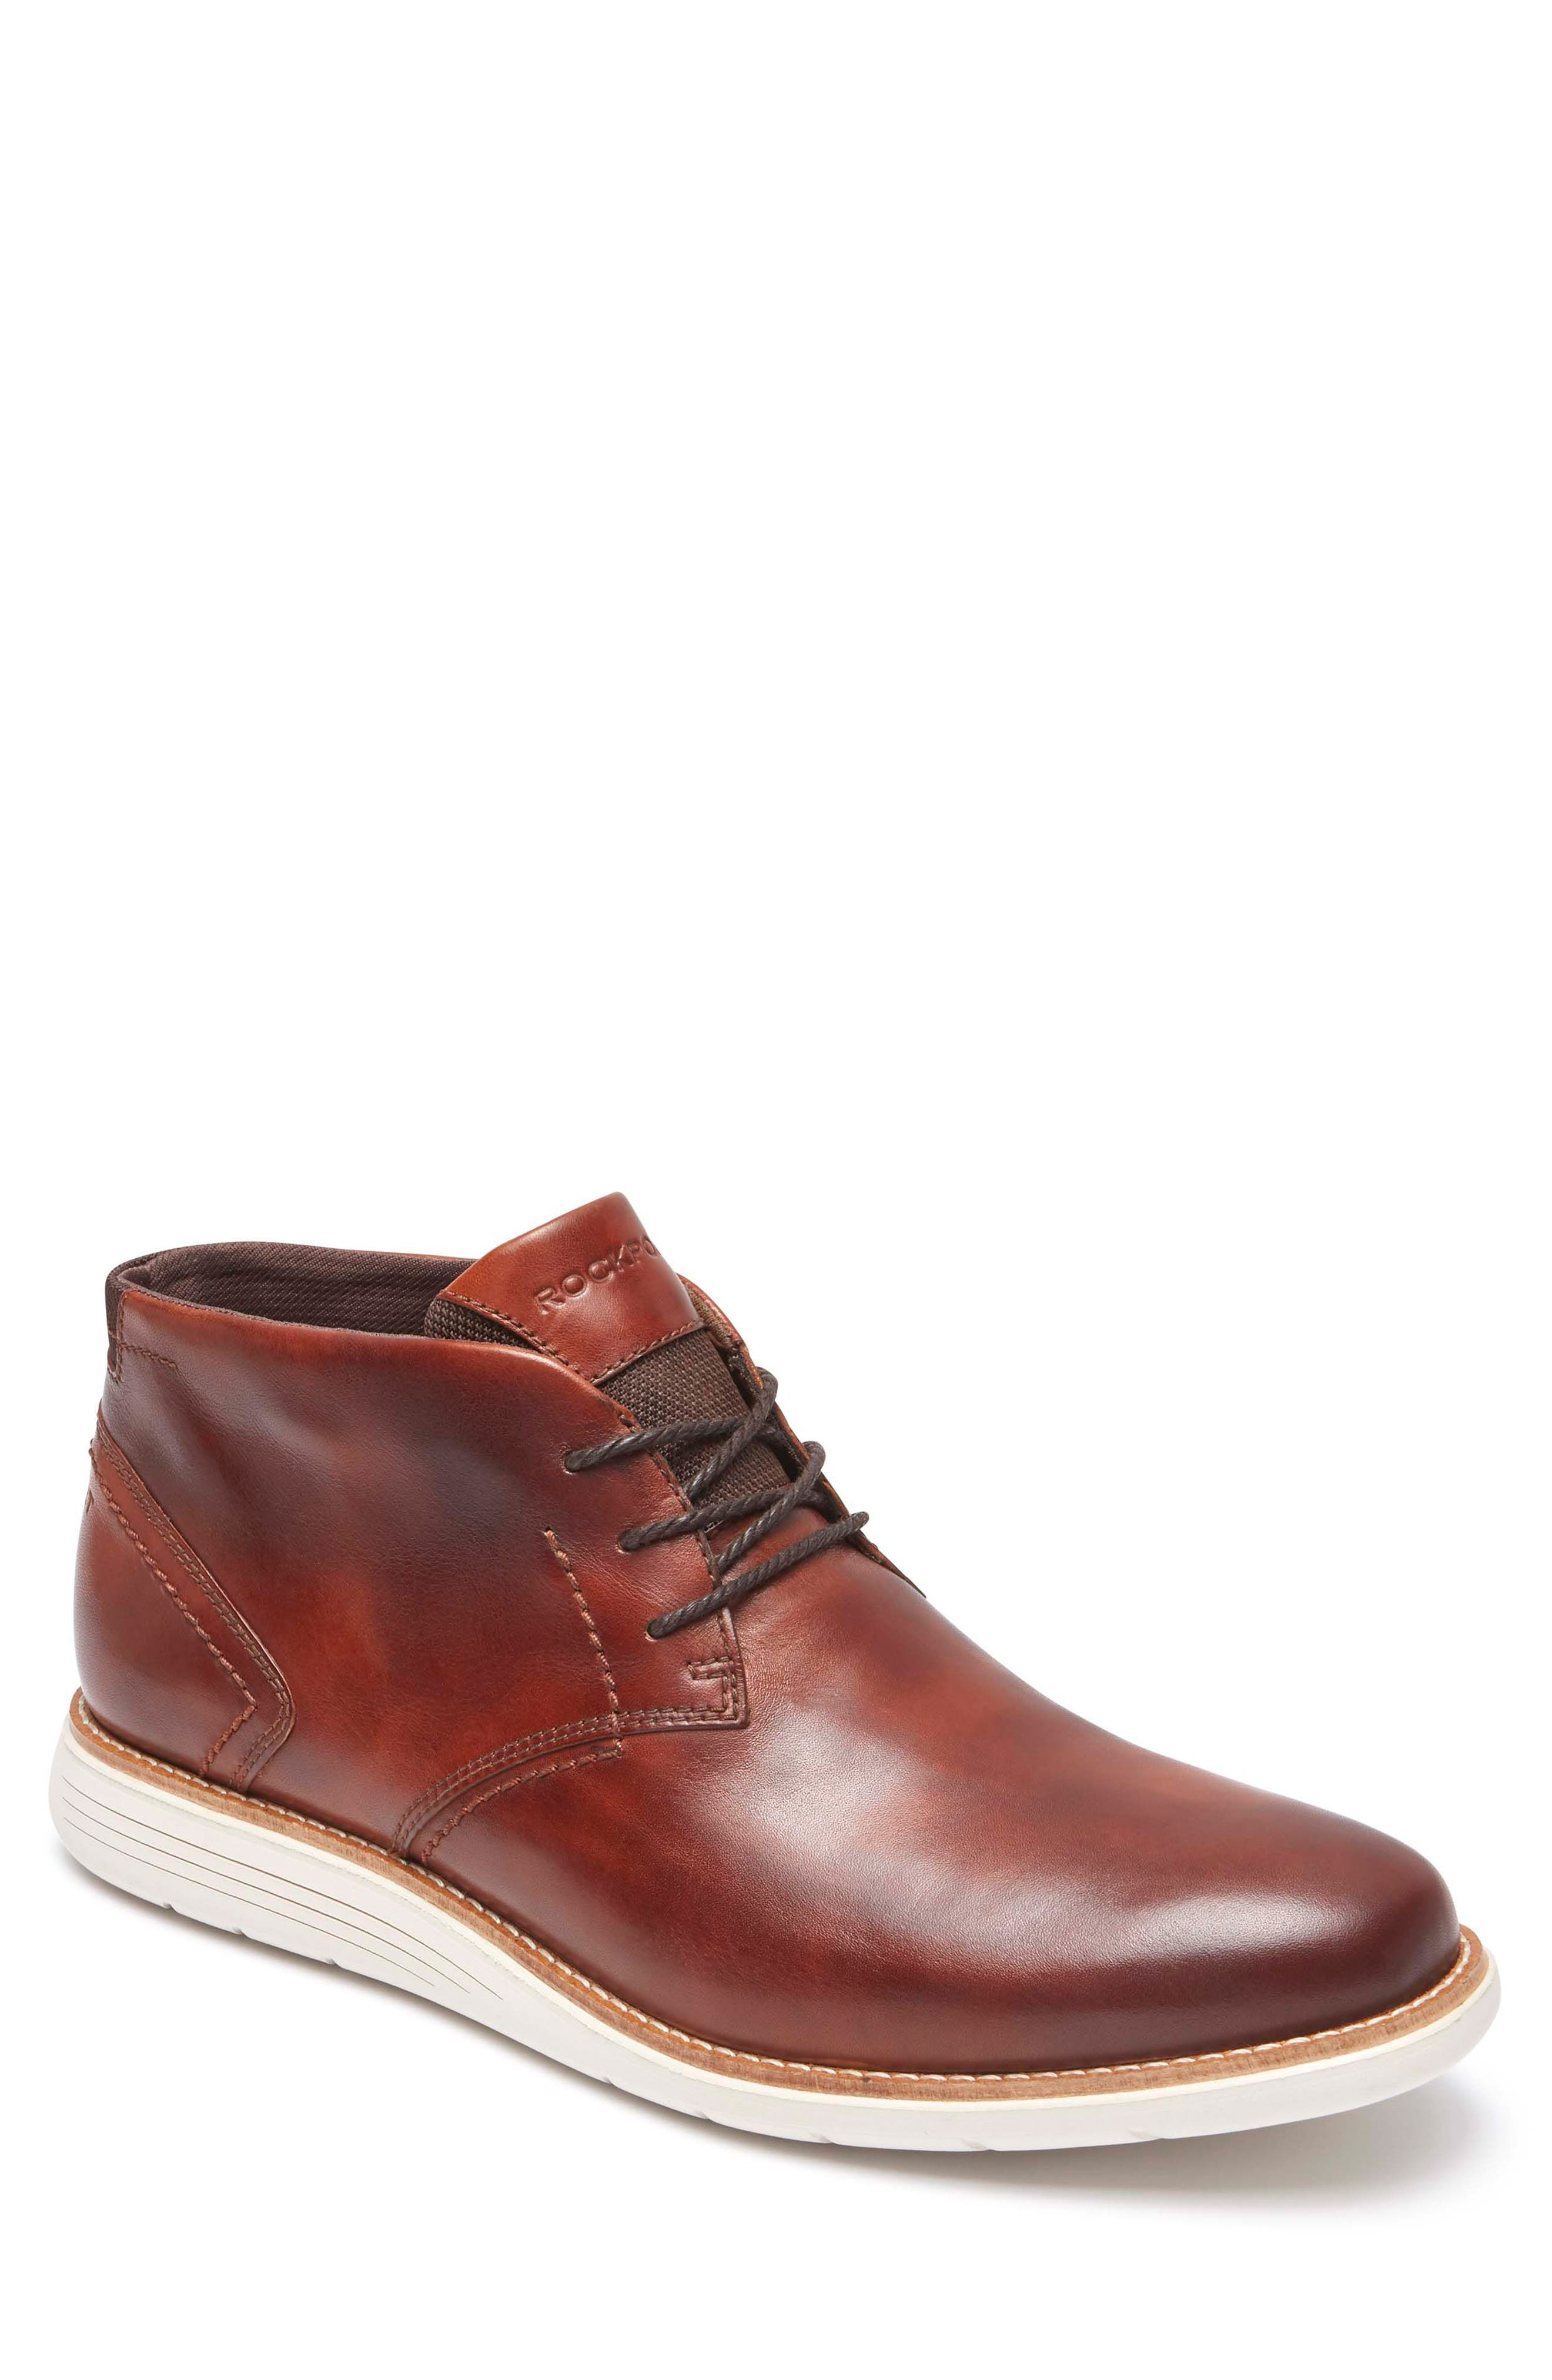 Total Motion Sport Dress Chukka Boot,                         Main,                         color, Tan Leather